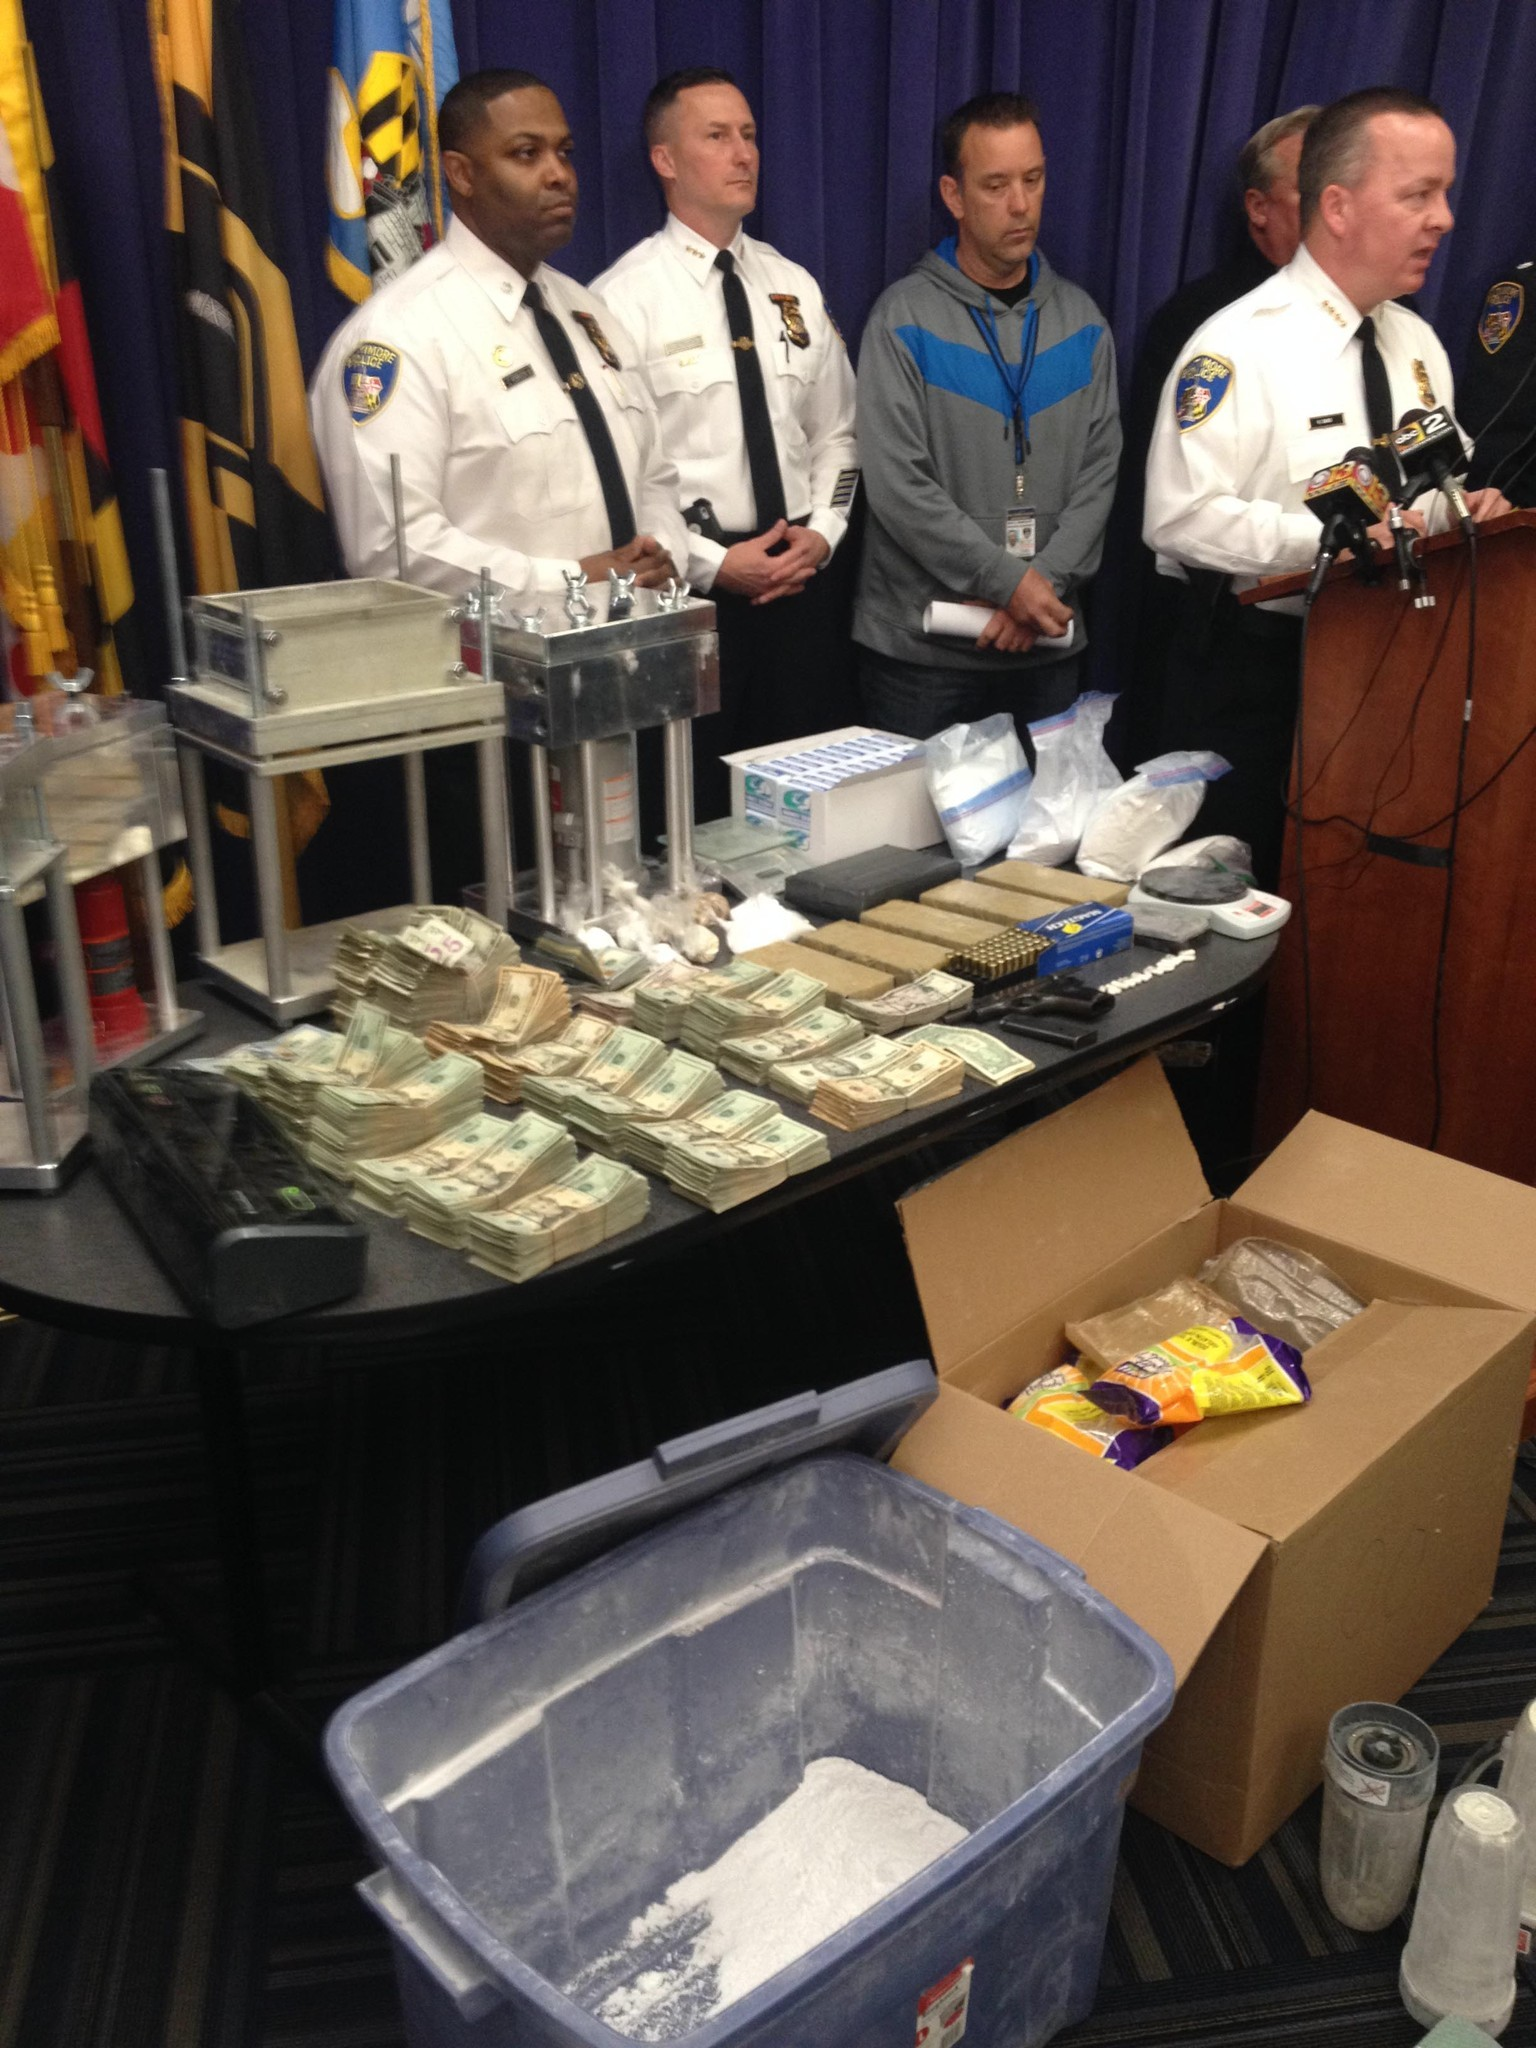 Amid shift in drug strategy, police bust Northwest Baltimore heroin